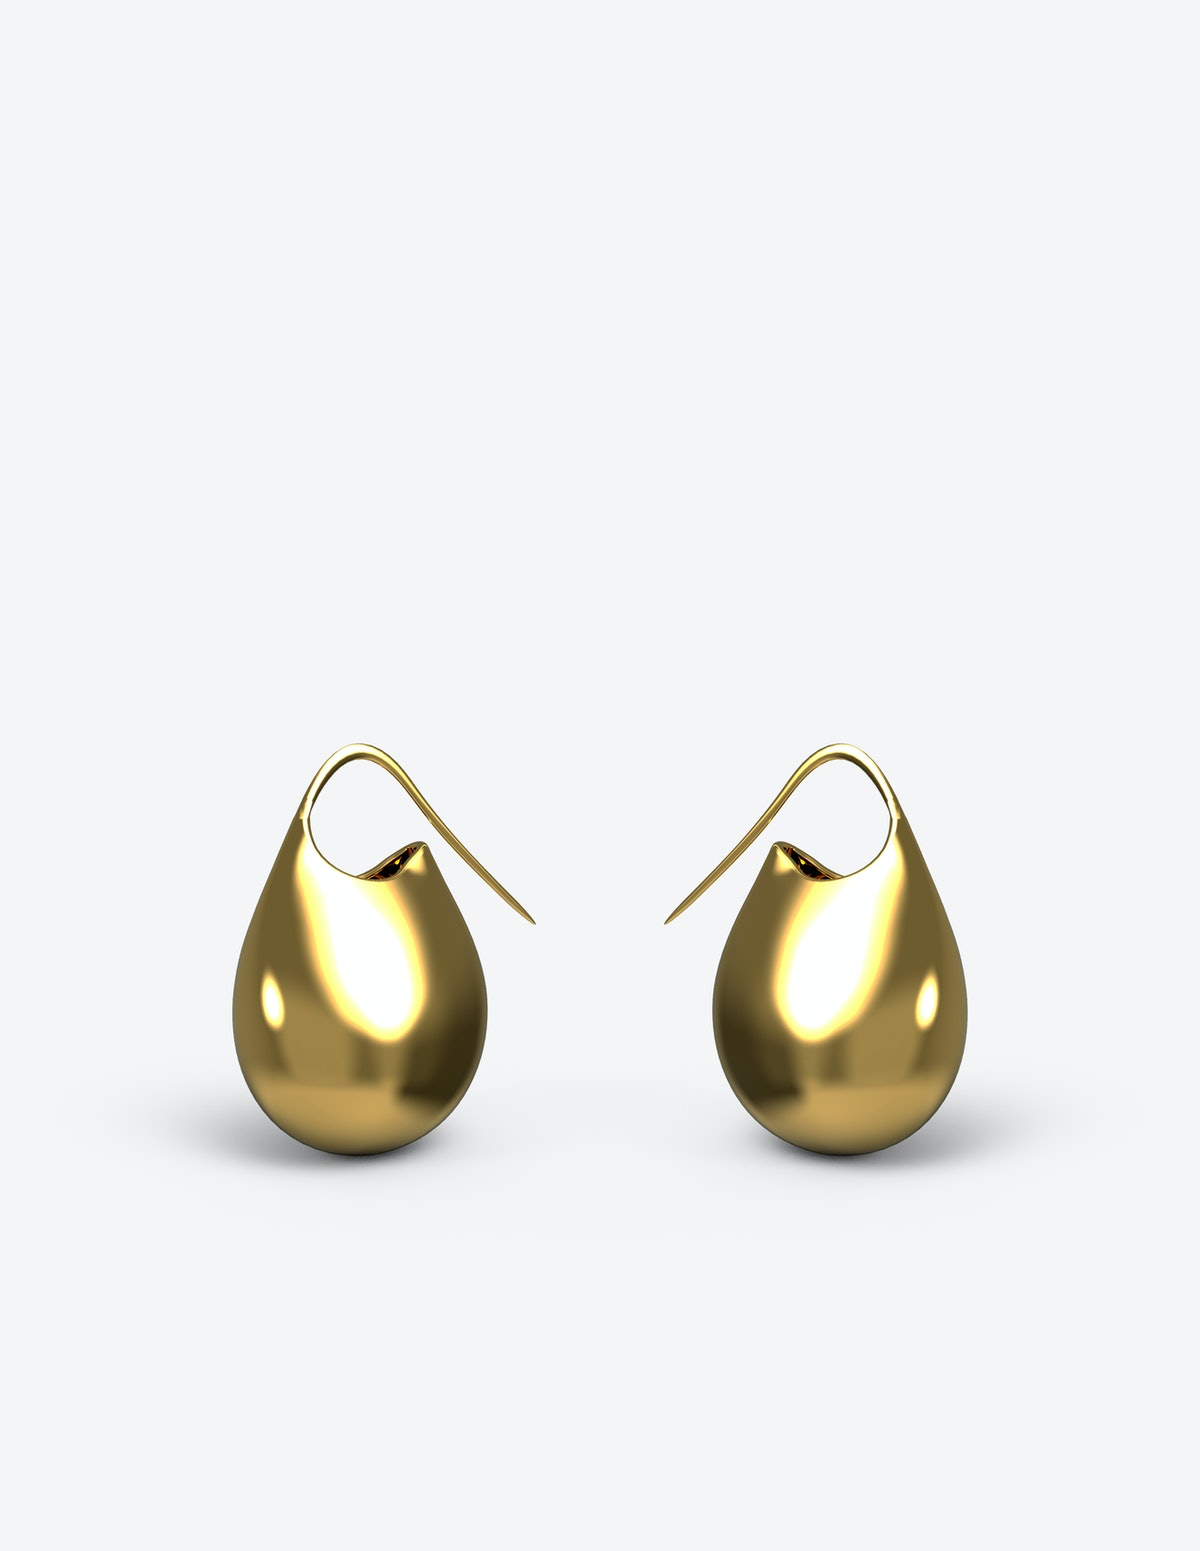 Gold vermeil Jug Drops from Afro-futurist jewelry brand Khiry, designed by Jameel Mohammed.